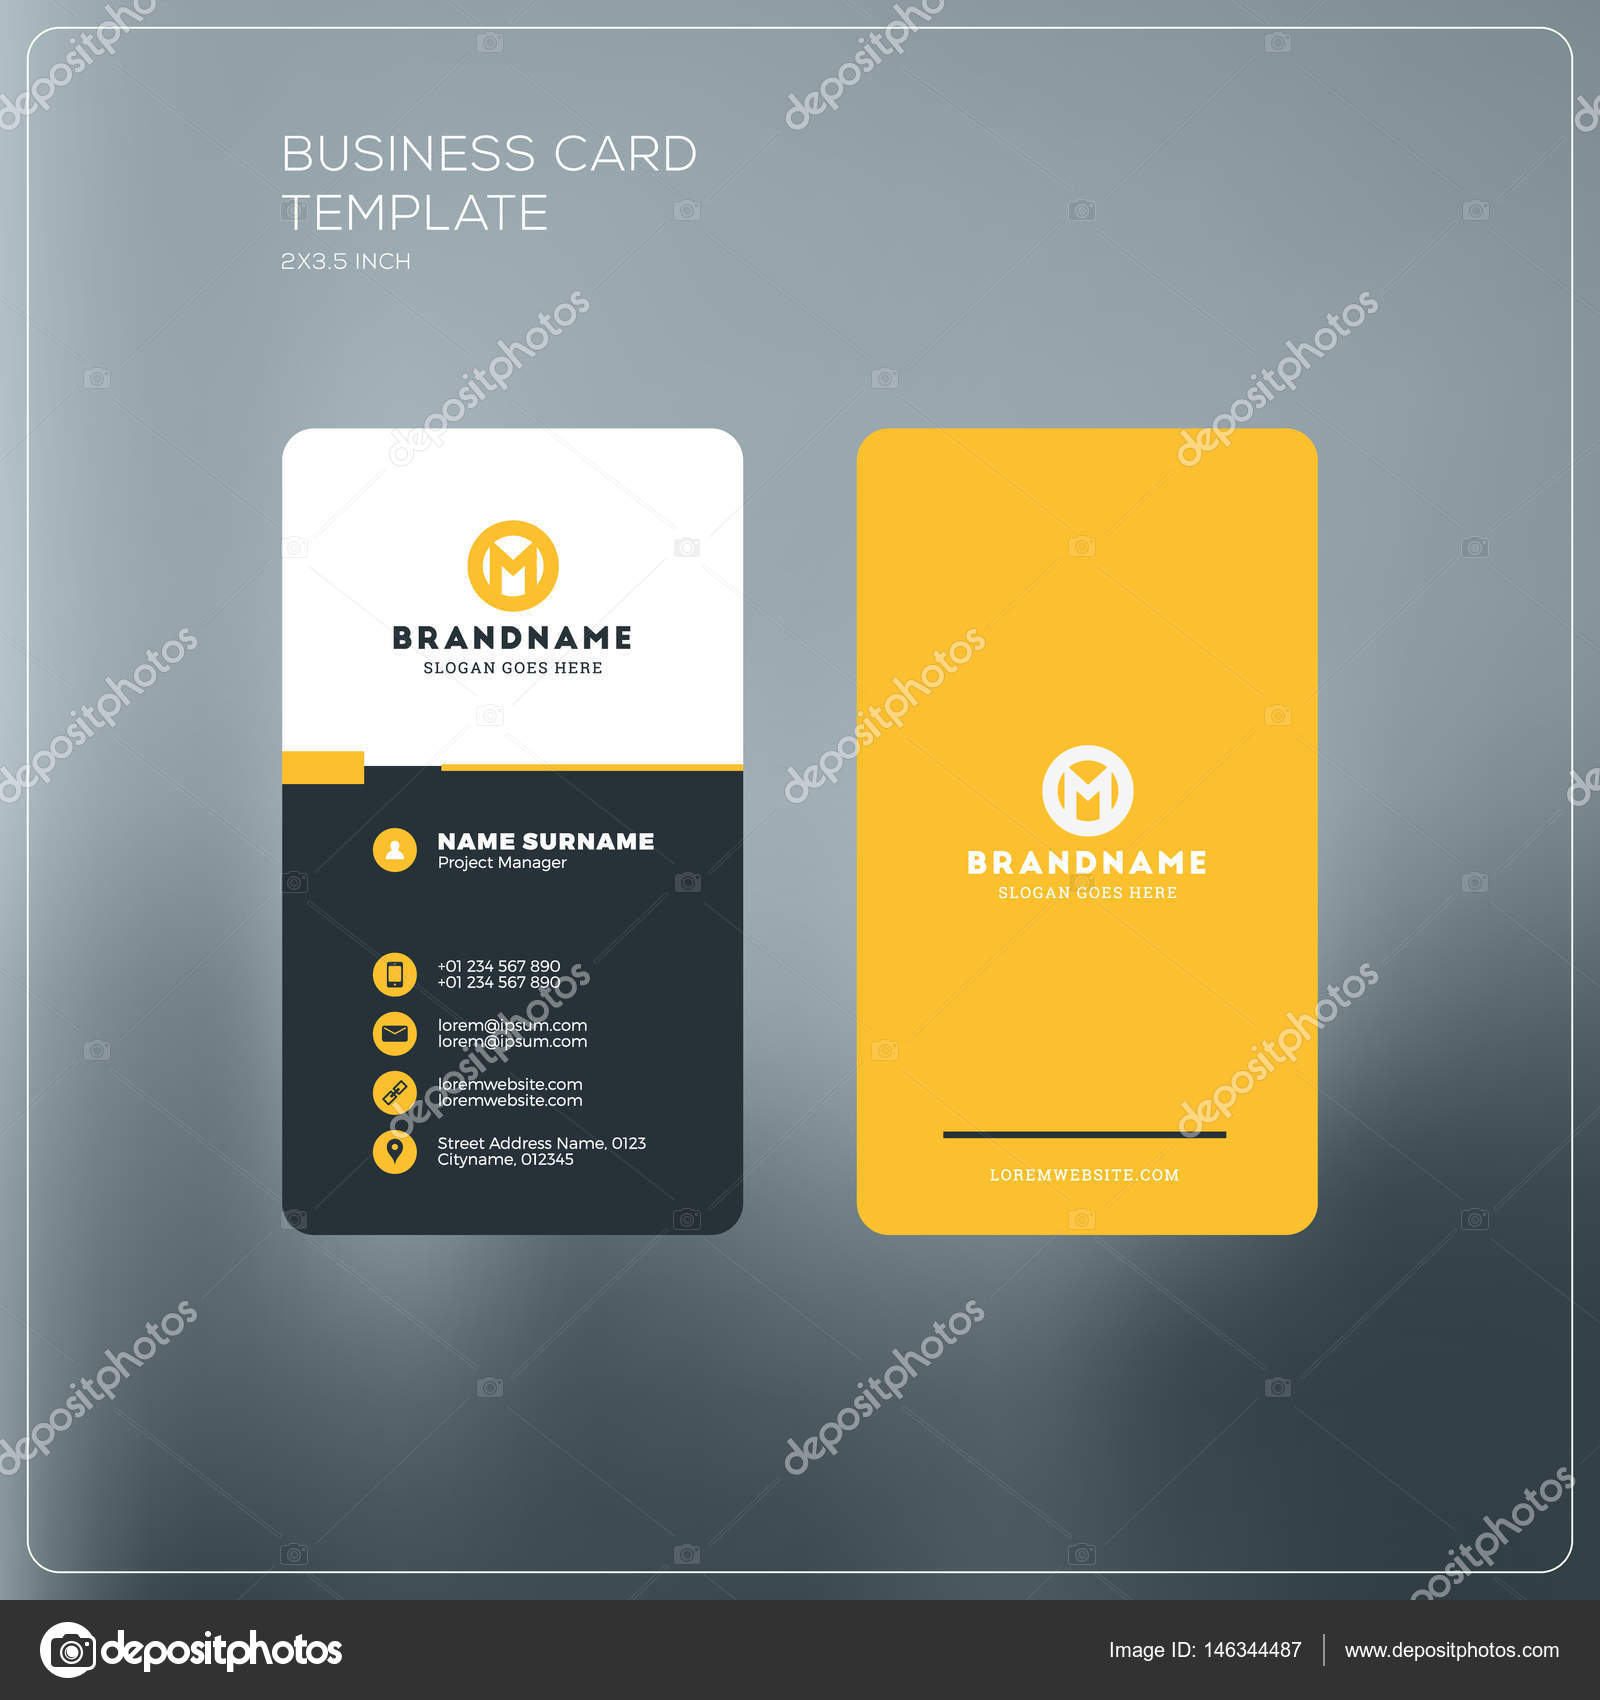 Vertical business card print template personal business card with vertical business card print template personal business card with company logo black and yellow fbccfo